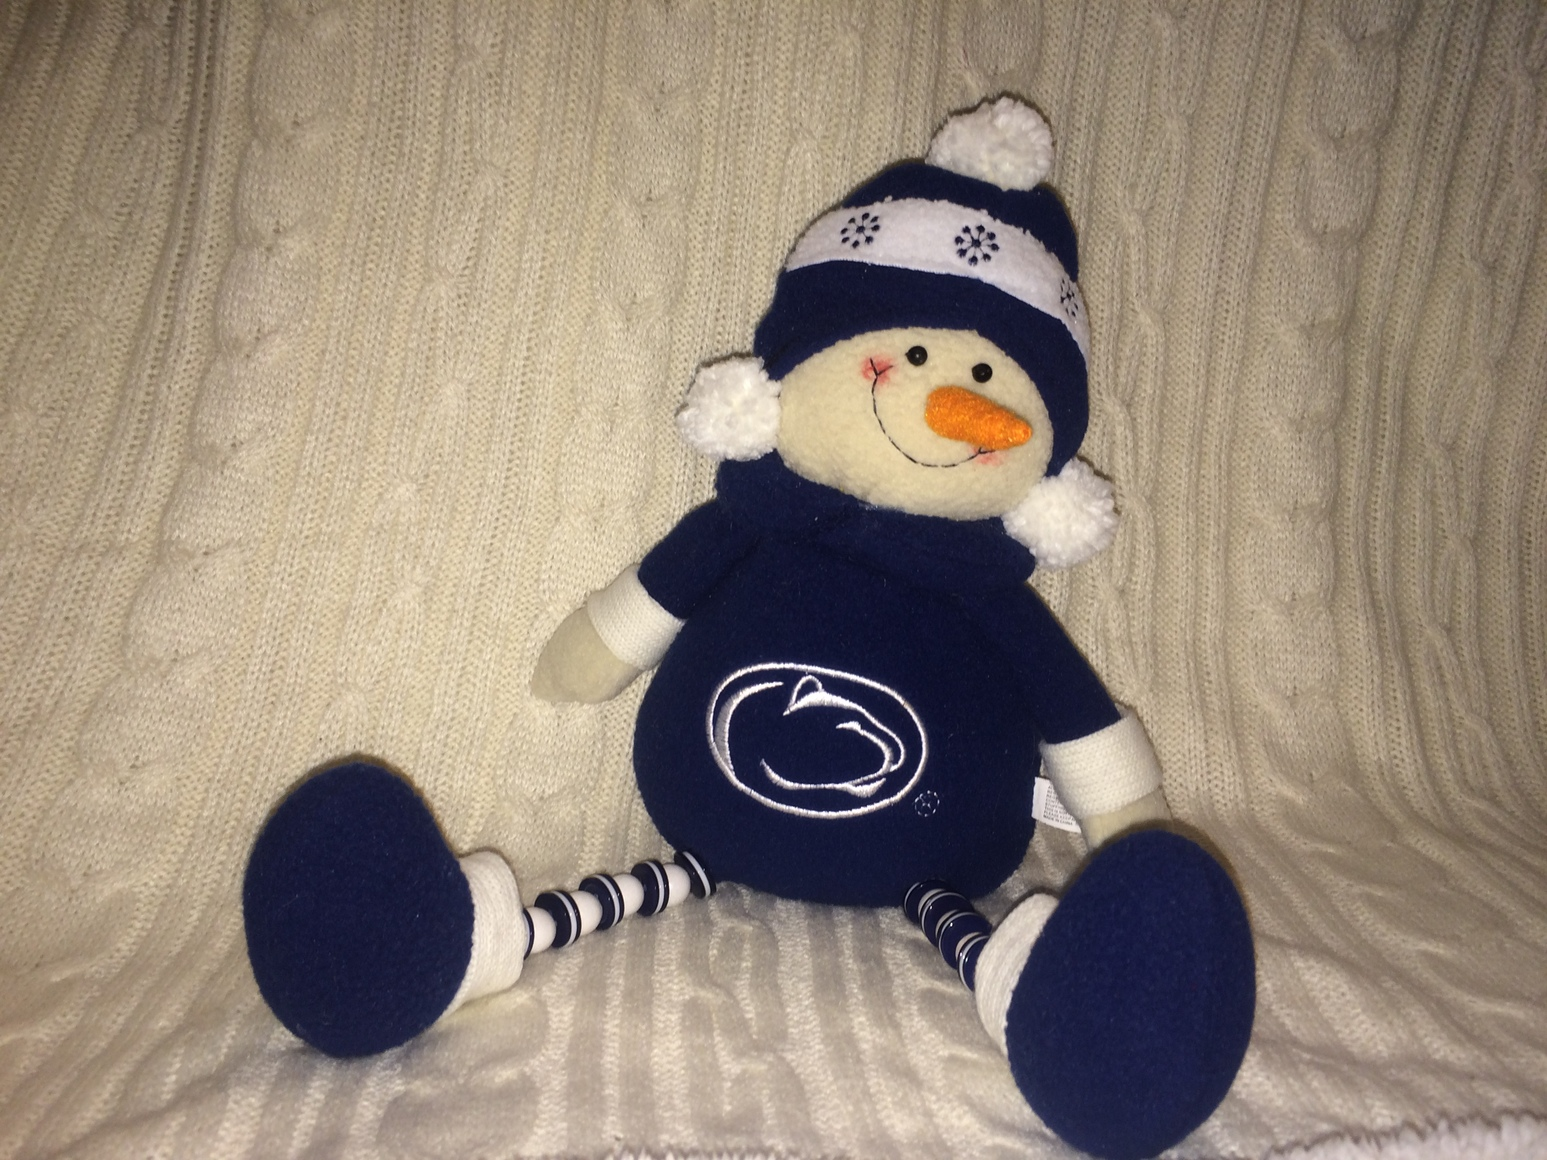 Check out these awesome penn state holiday decorations for Penn state decorations home